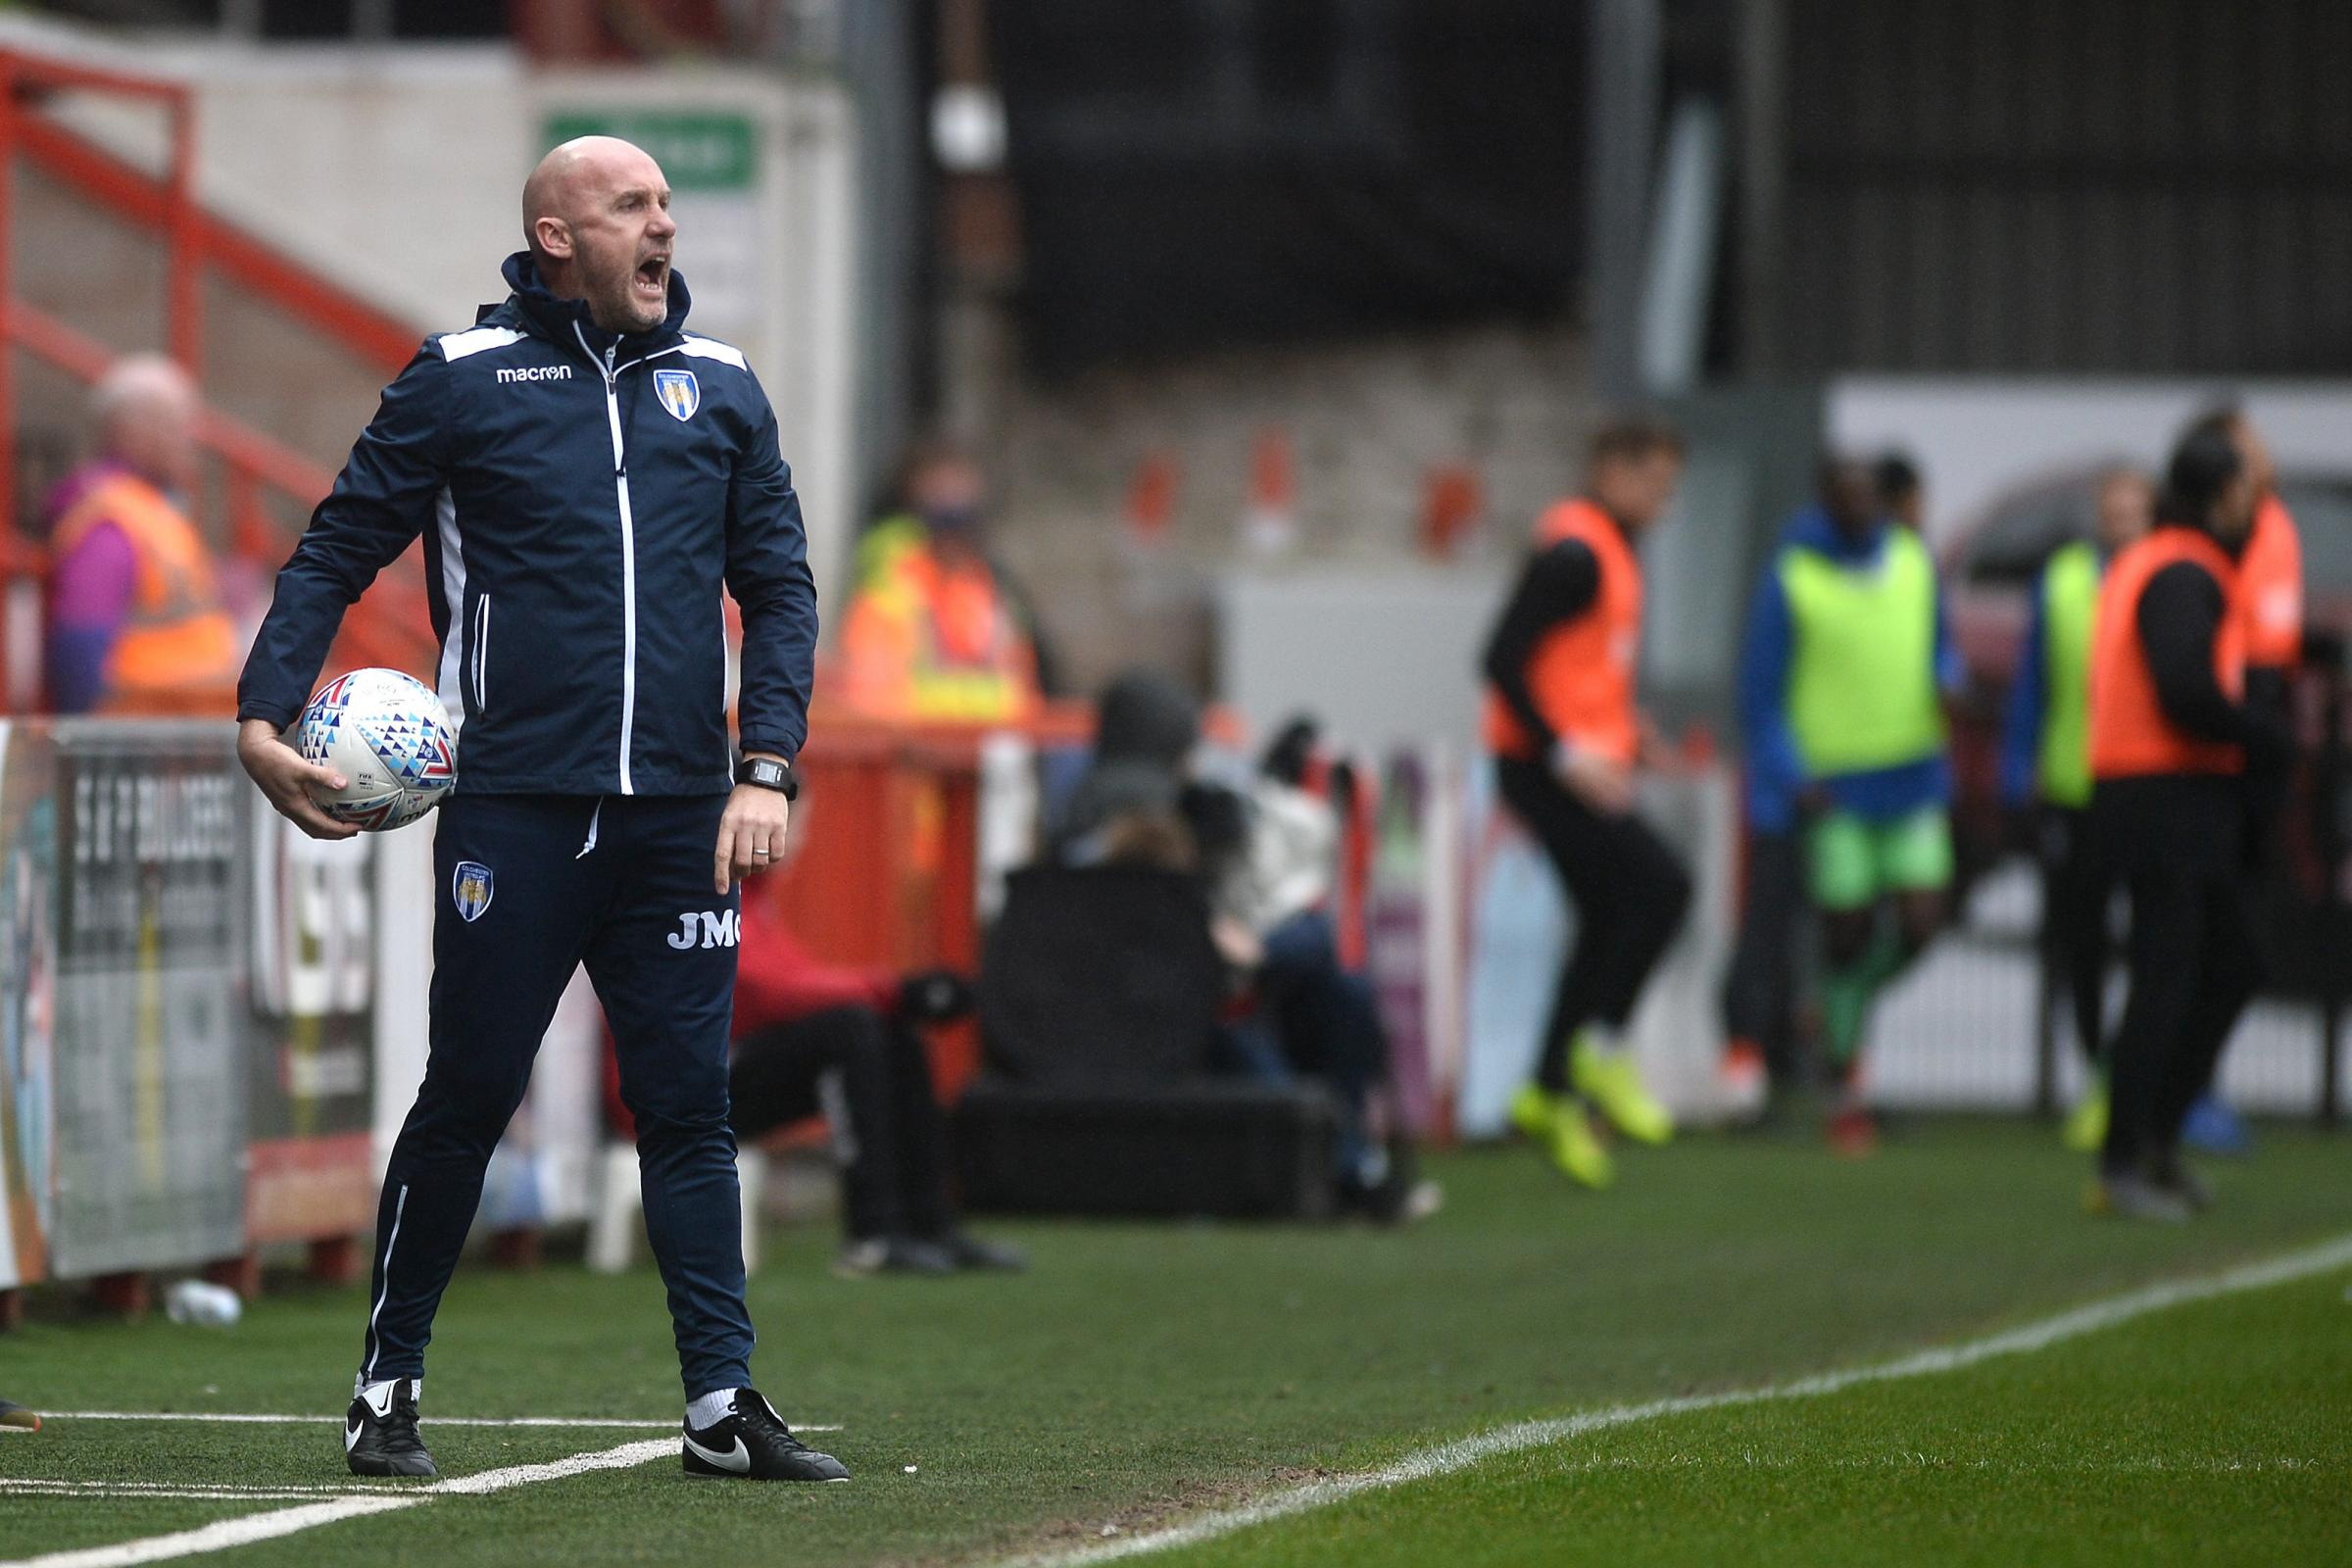 Work ethic - Colchester United head coach John McGreal at Exeter City Picture: RICHARD BLAXALL